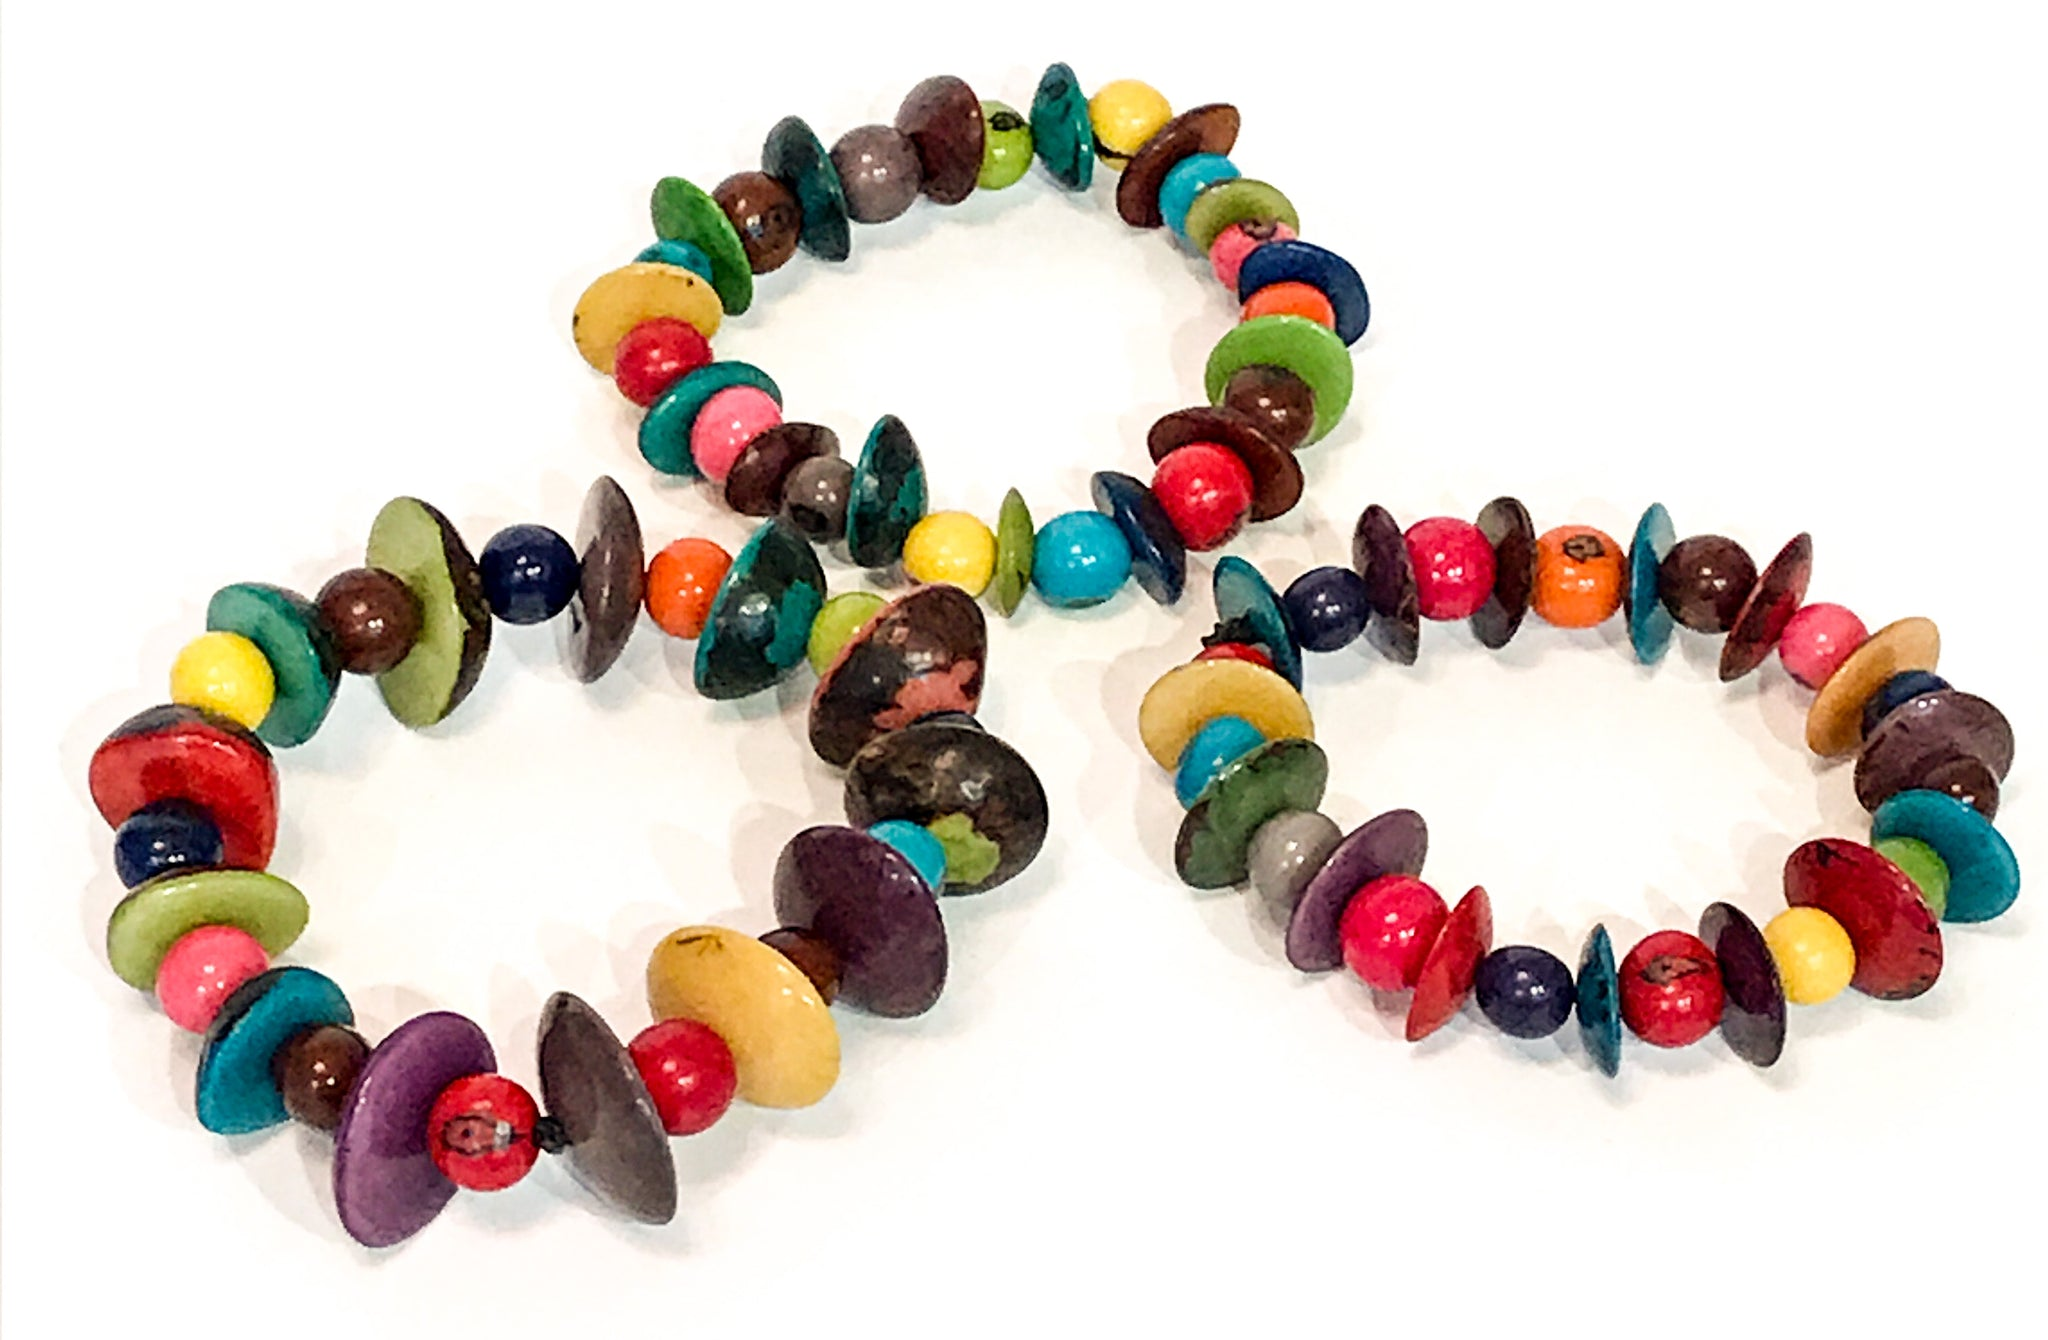 Dots and Dashes Tagua Nut Bracelet